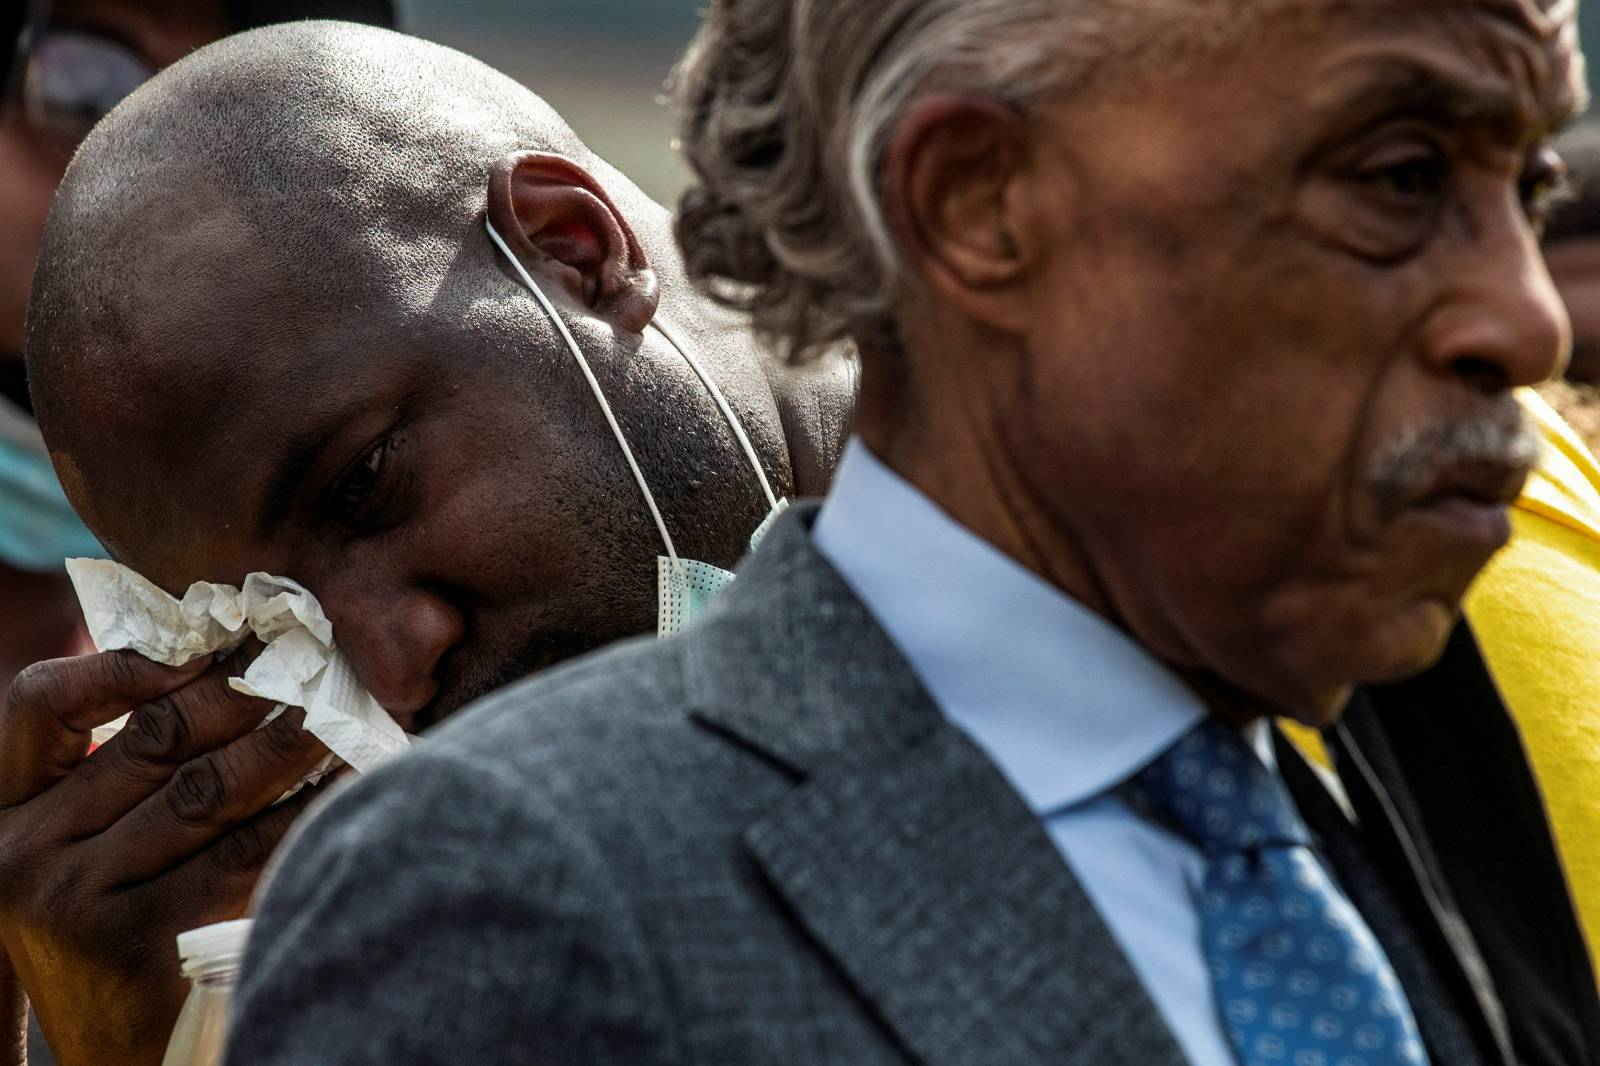 Philonise Floyd, brother of George Floyd, wipes tears after speech at the public viewing of Floyd at The Fountain of Praise church in Houston